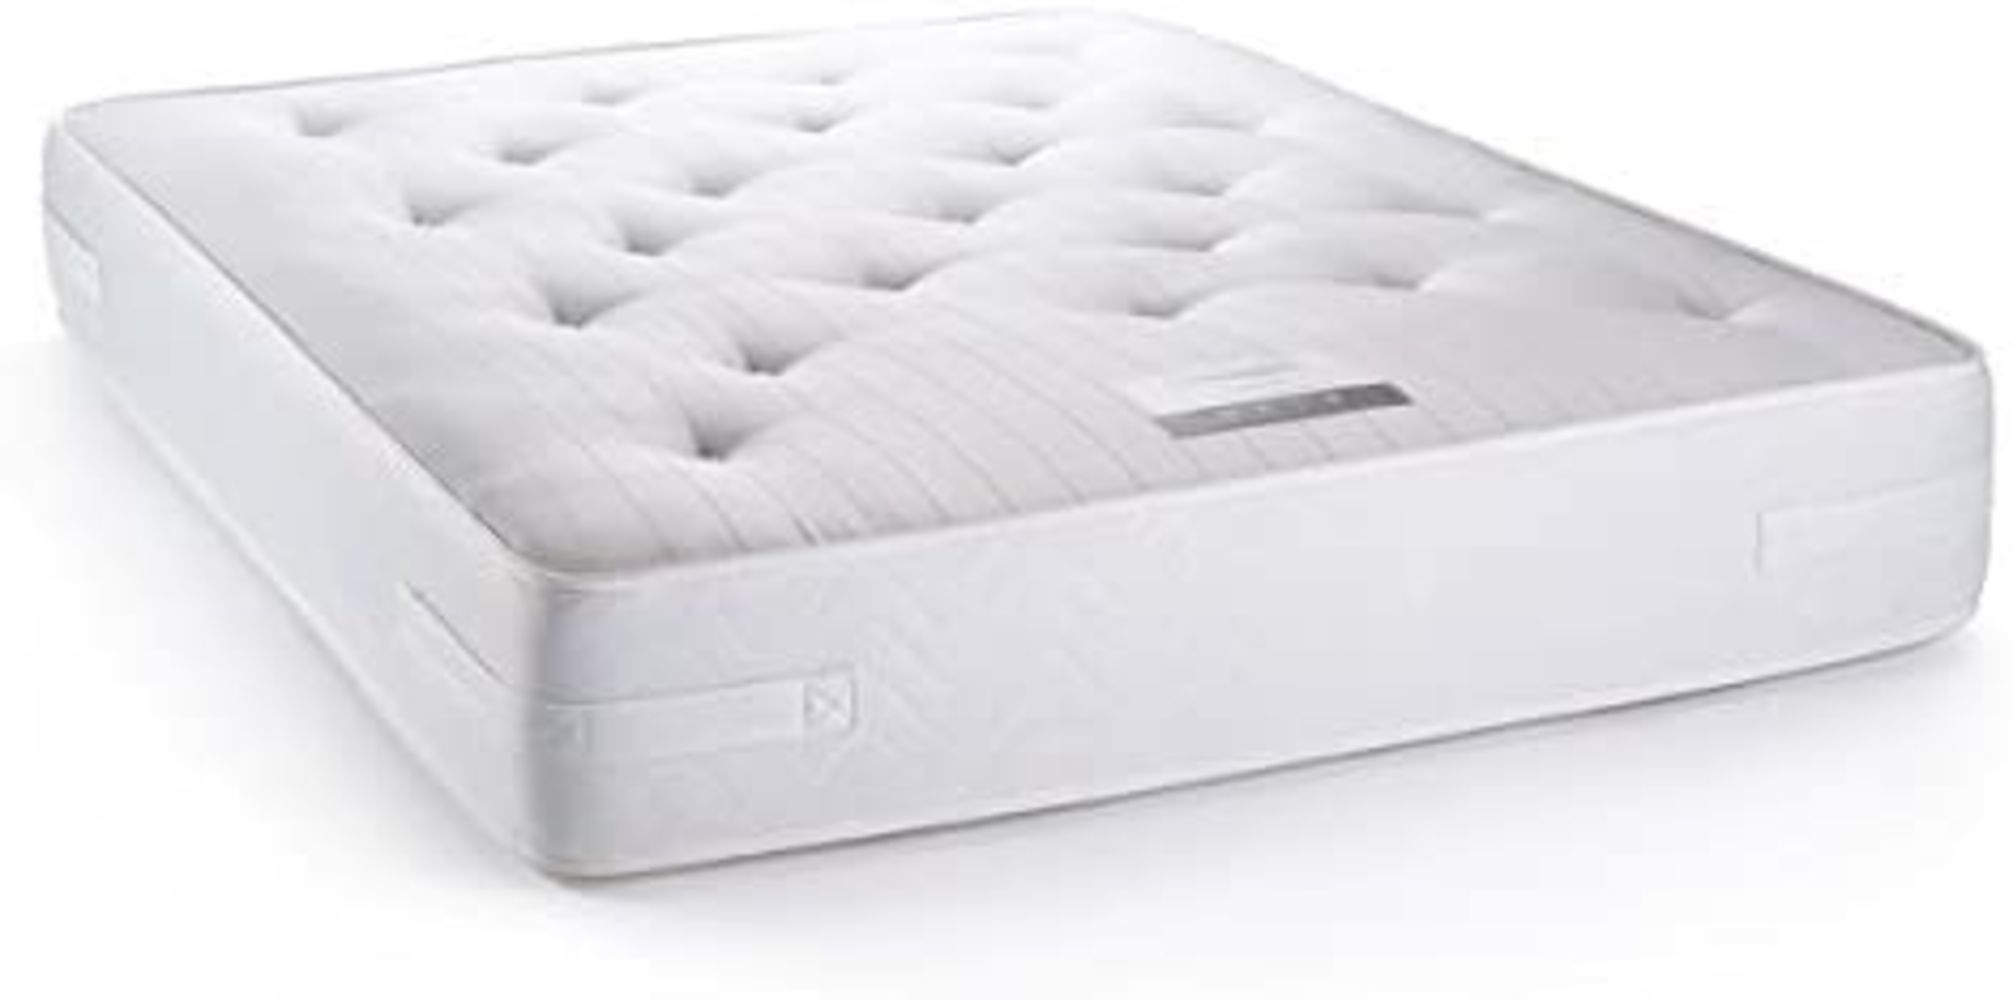 Brand New Luxury Mattresses - Overstock & Clearance Lines From Major Furniture Retailer - In Excess Of £100k Of Retail Stock!